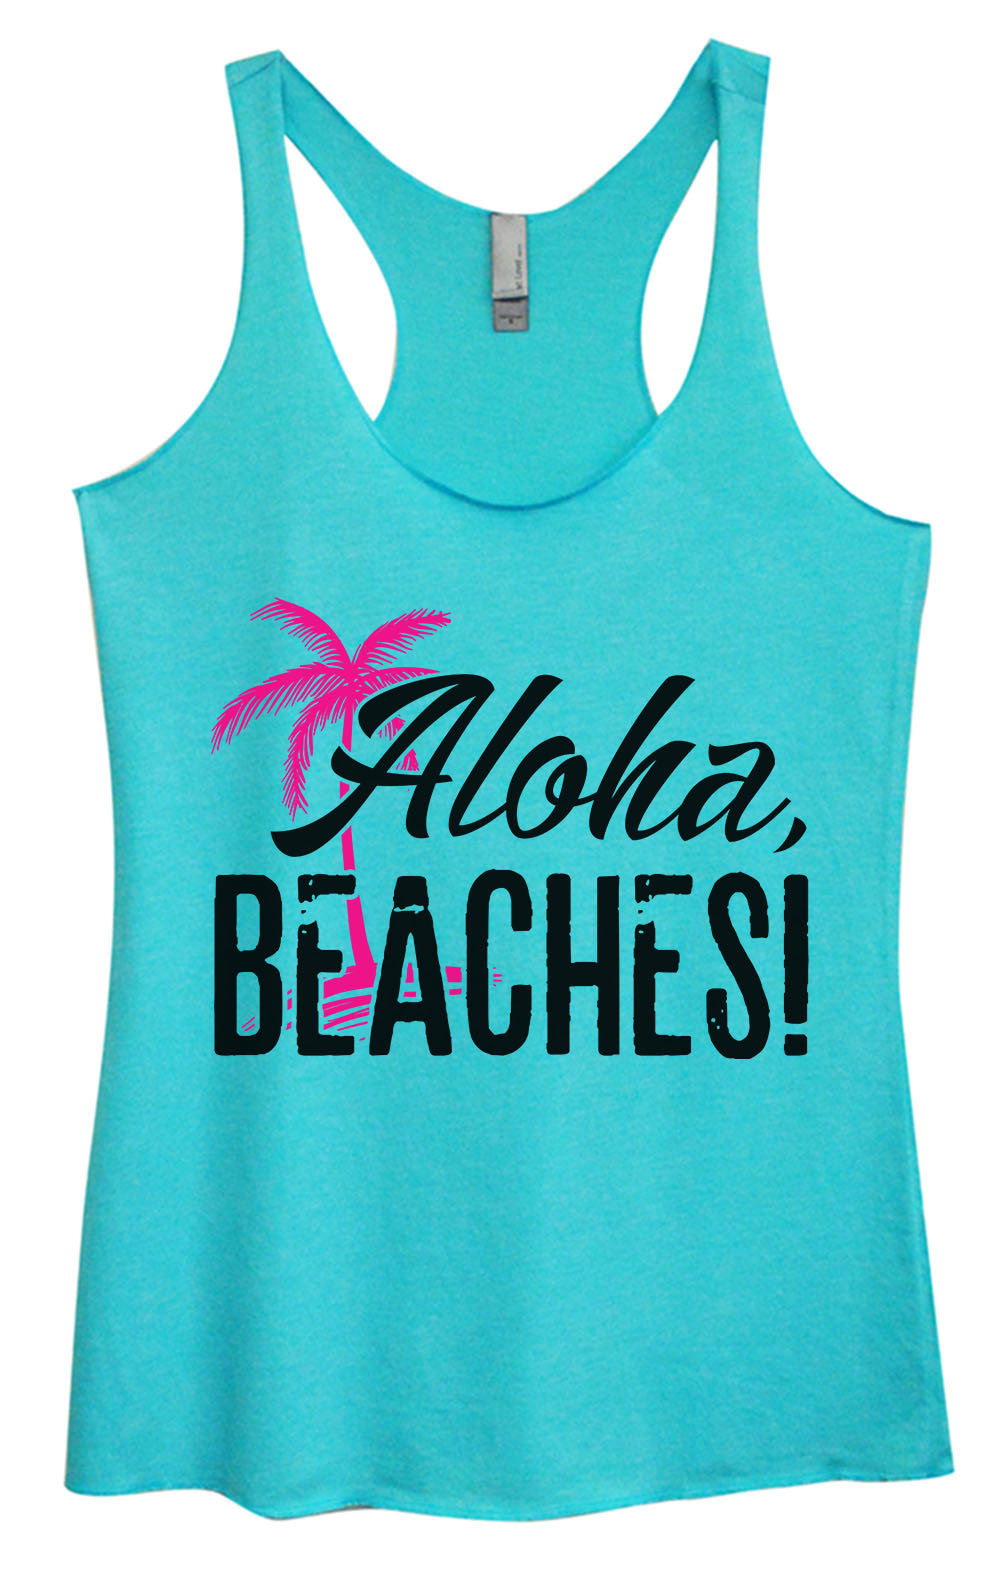 Womens Fashion Triblend Tank Top - Aloha, Beaches! - Tri-1387 - Funny Shirts Tank Tops Burnouts and Triblends  - 3